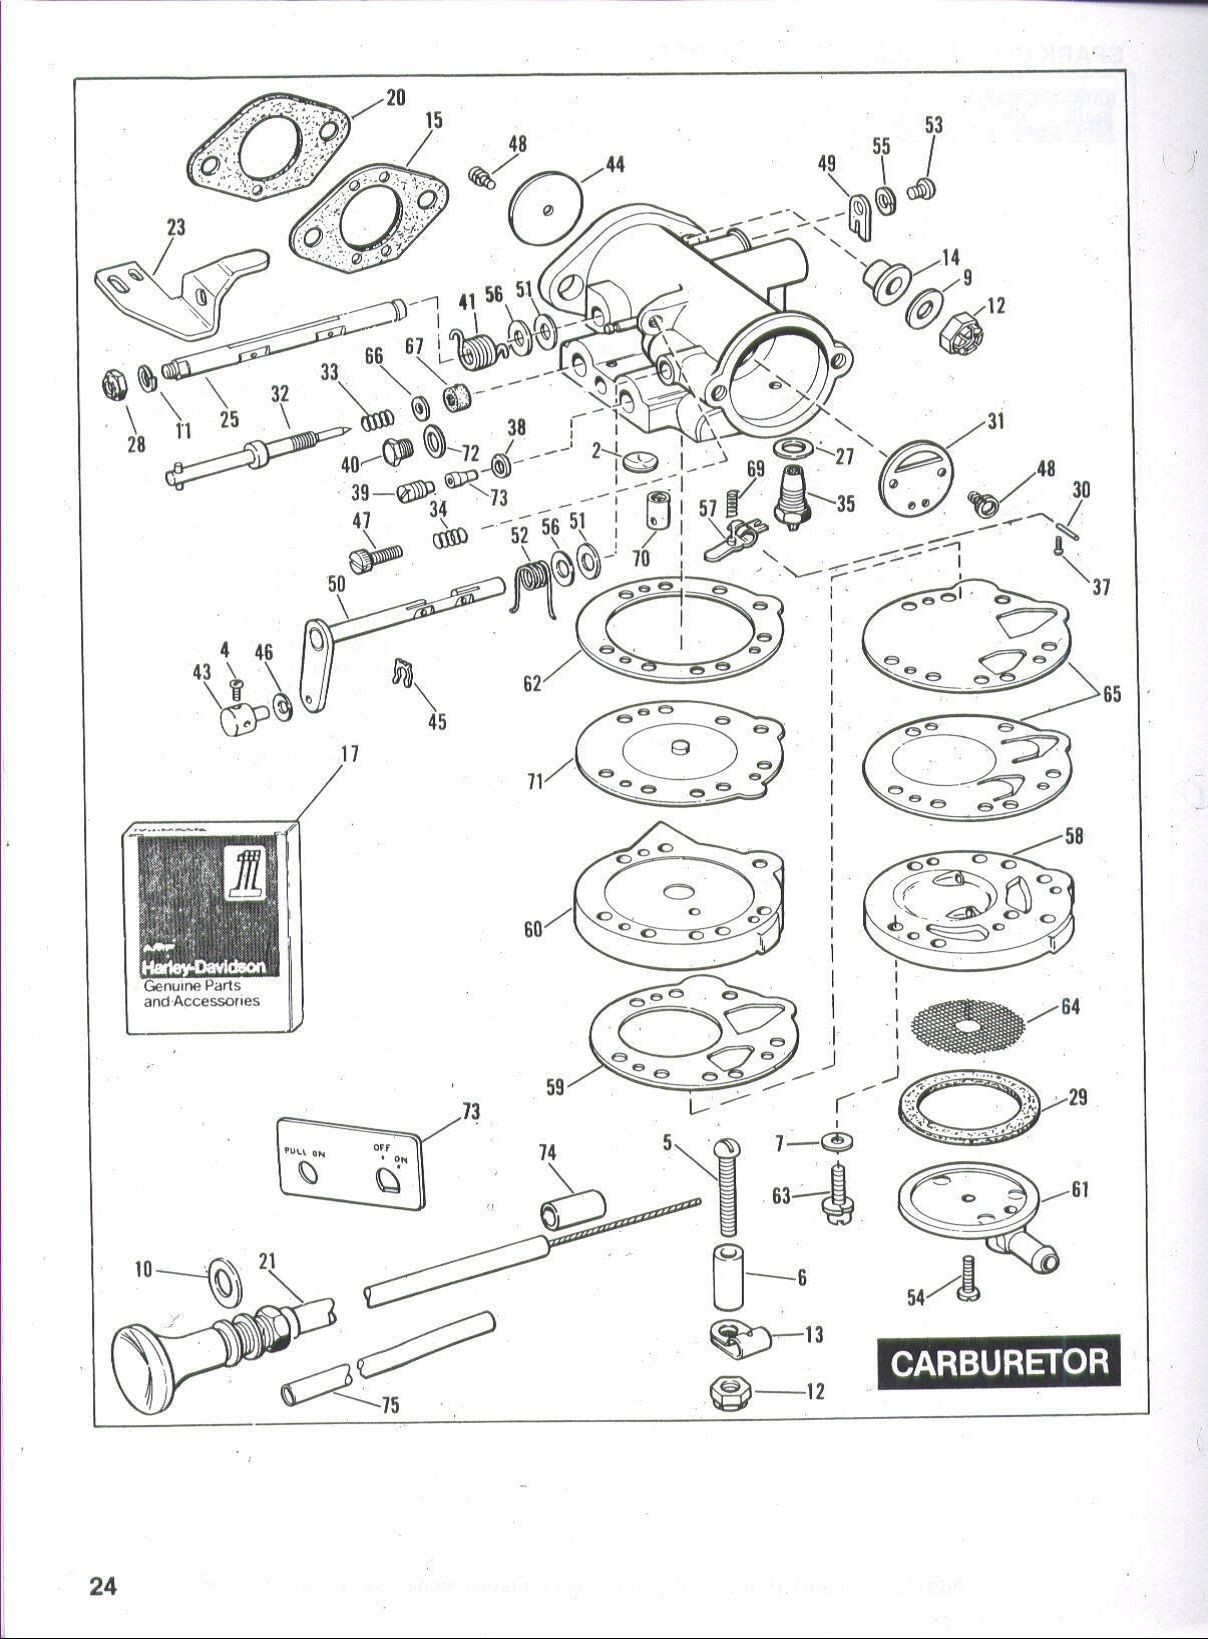 Club Car Parts Diagram Harley Davidson Golf Cart